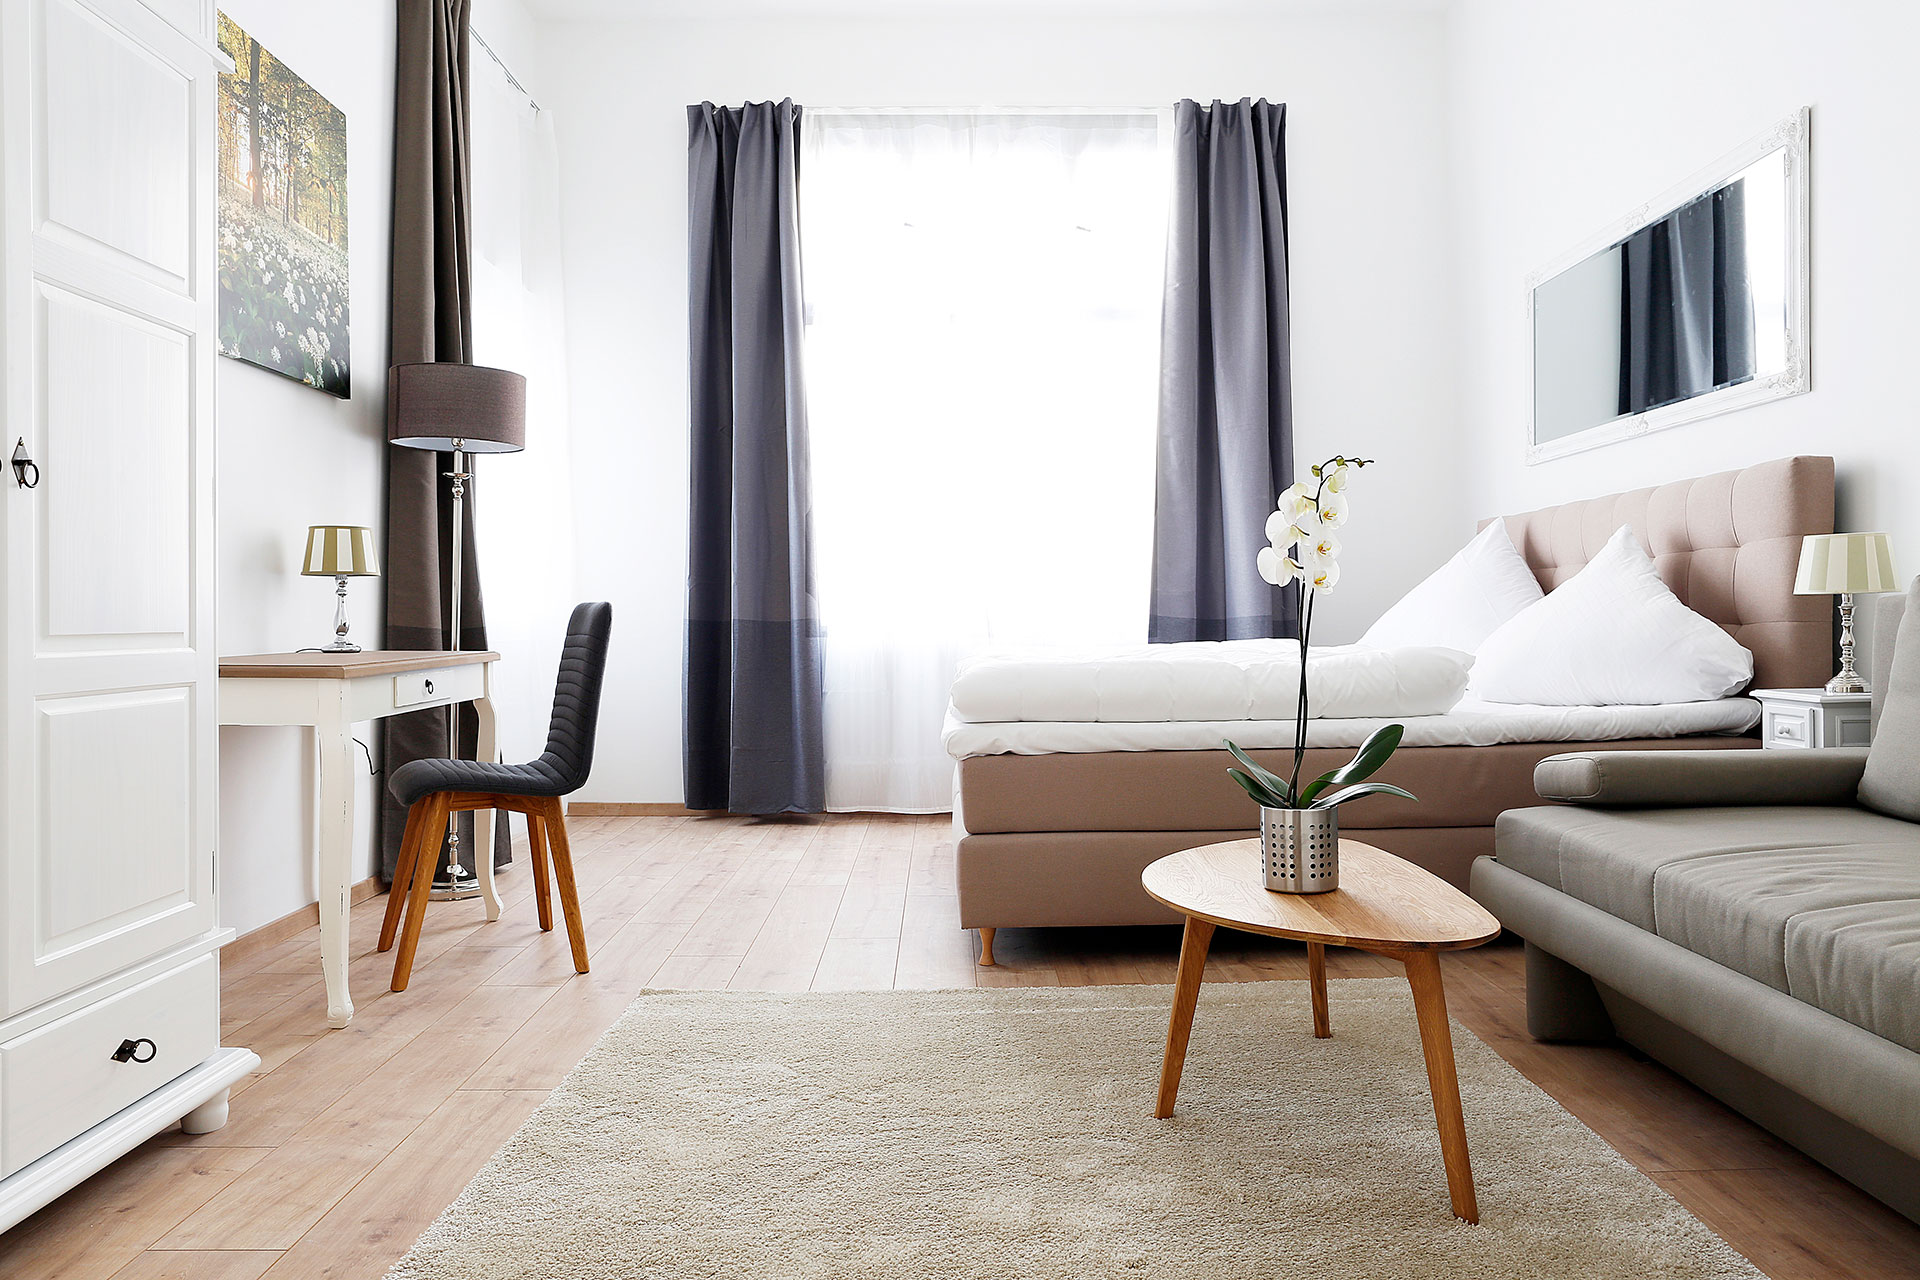 Apartments to rent in Berlin